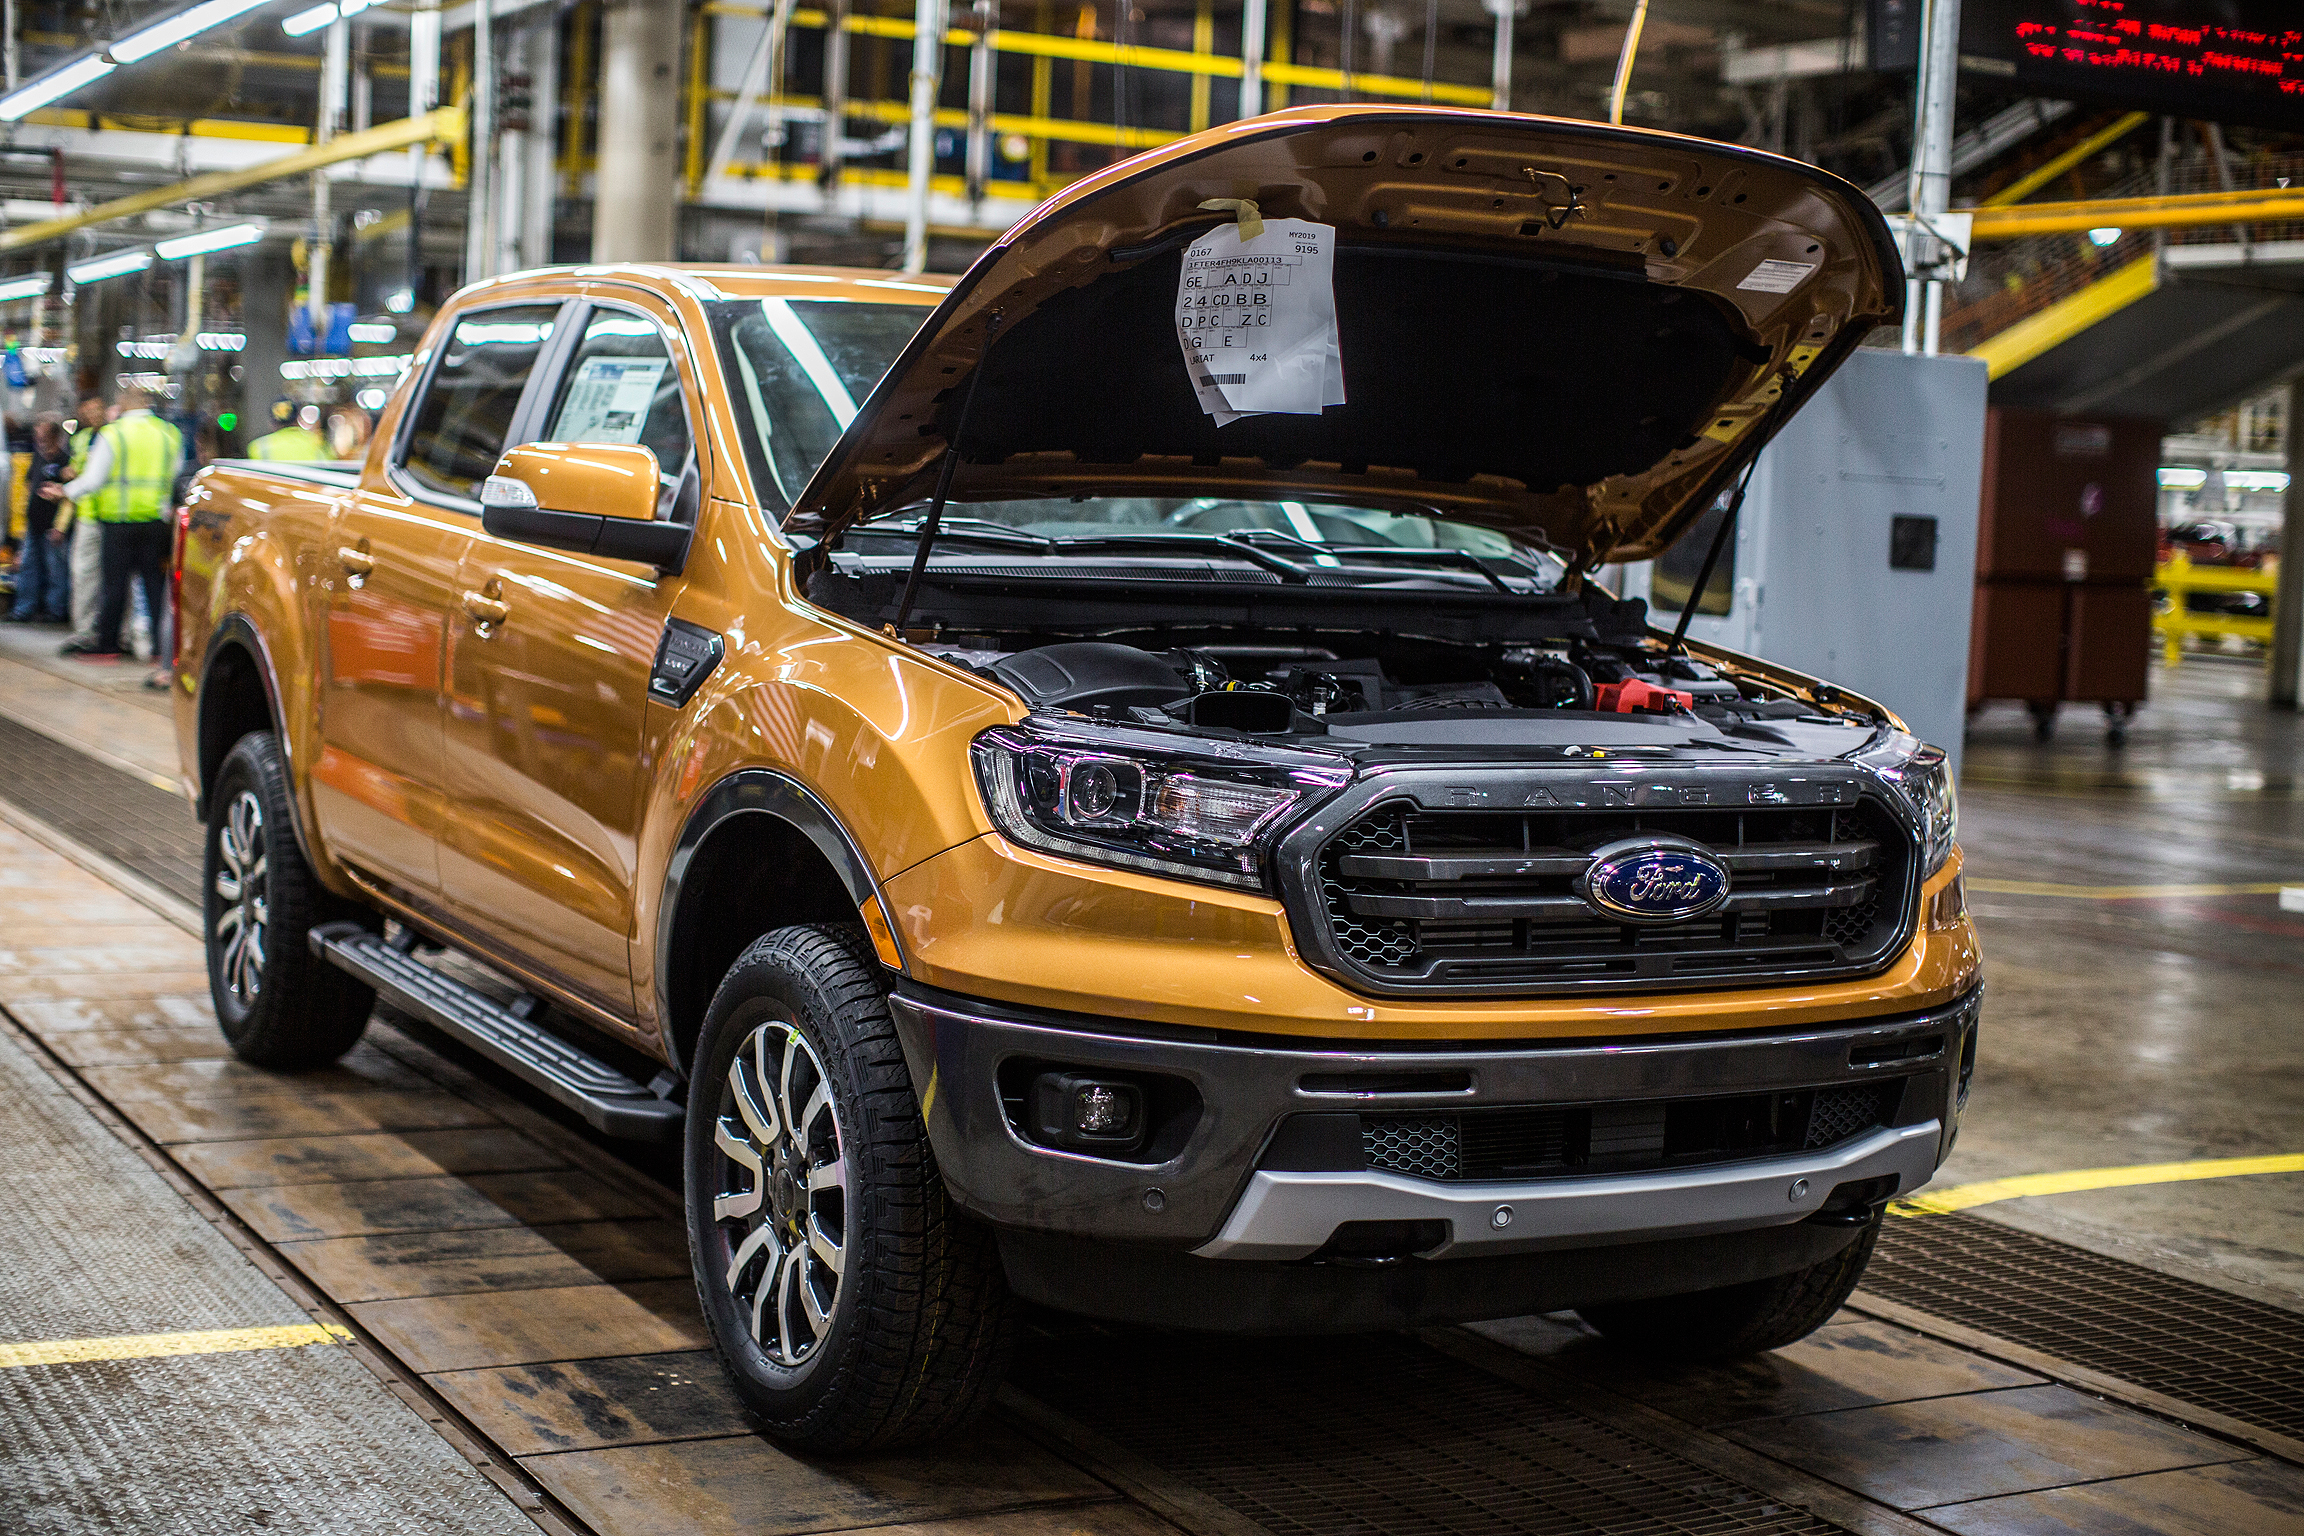 Ford Ranger Pickup Rated At 23 Mpg Combined Best Among Gasoline Ed Rivals